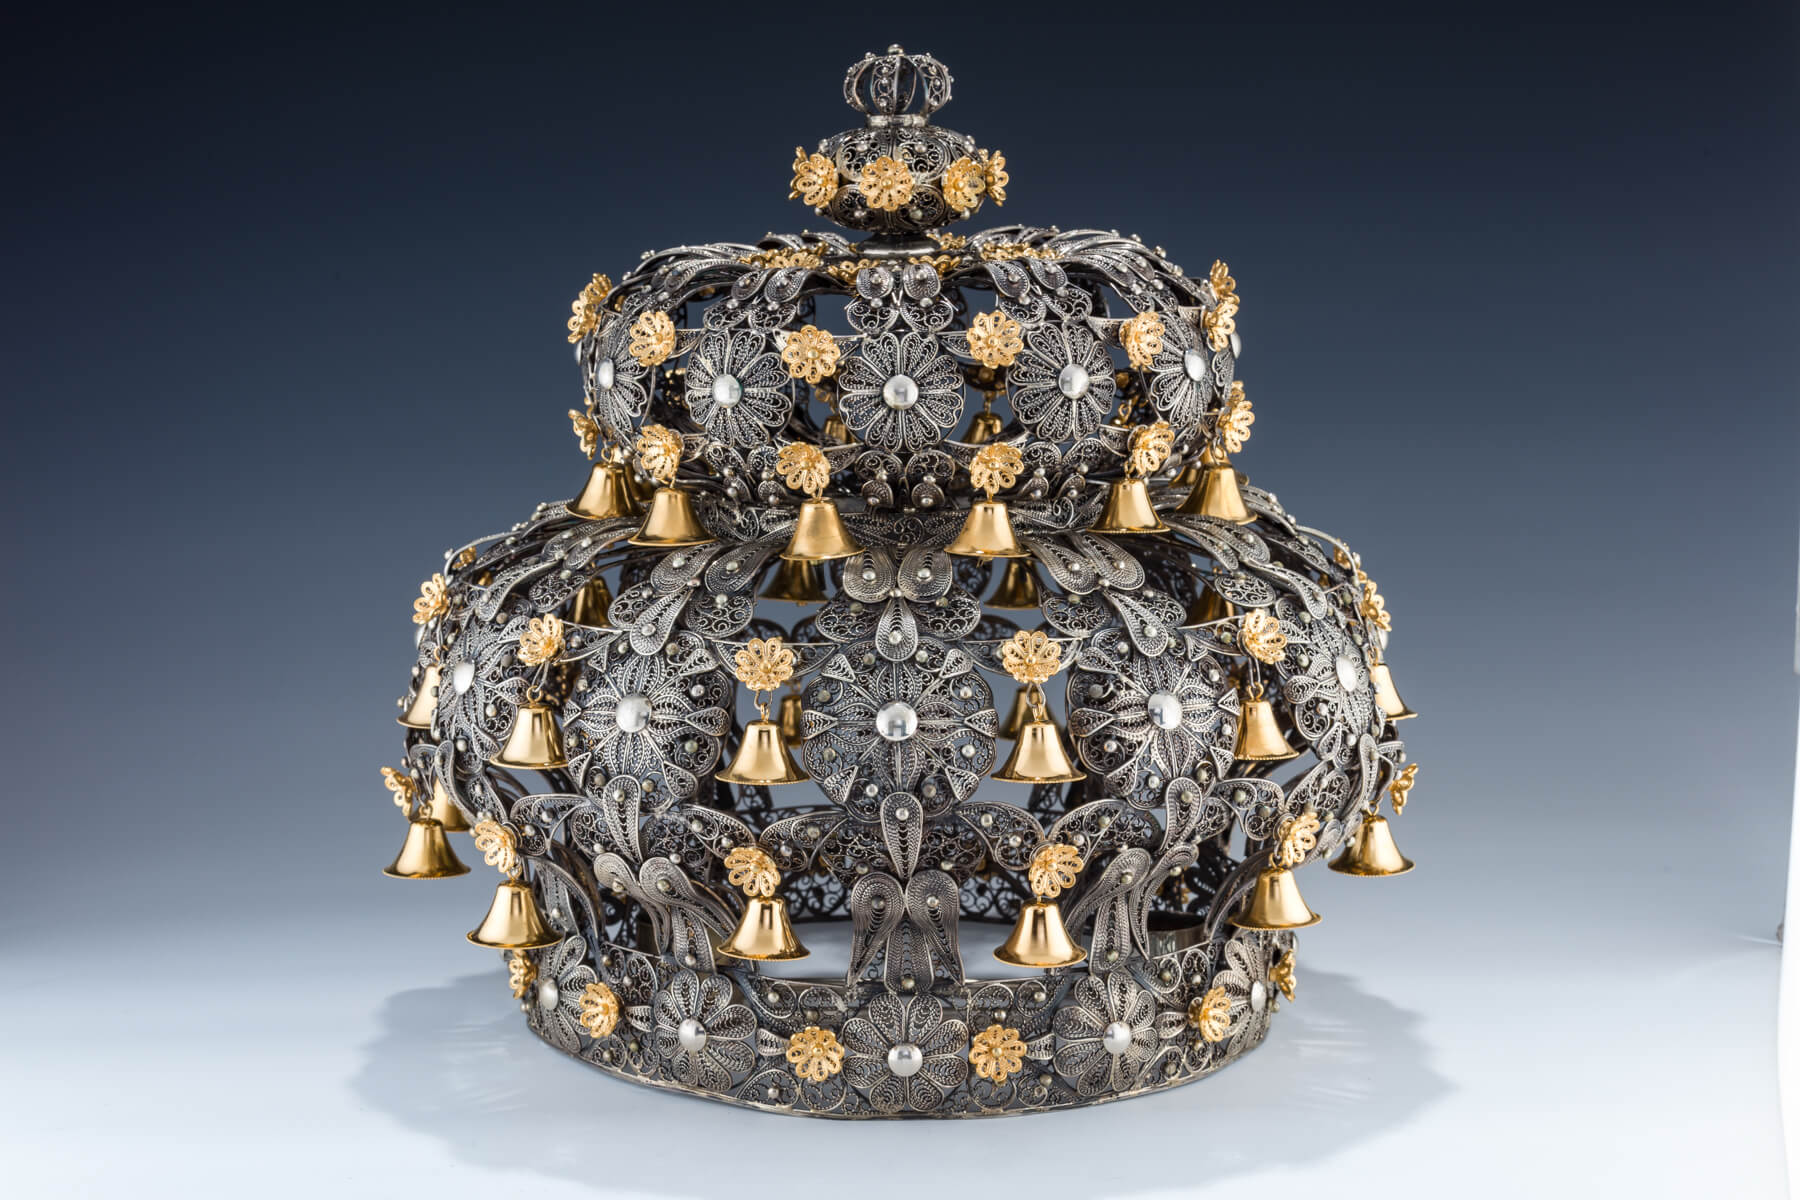 114. A Massive Sterling Silver Torah Crown By Shuki Freiman